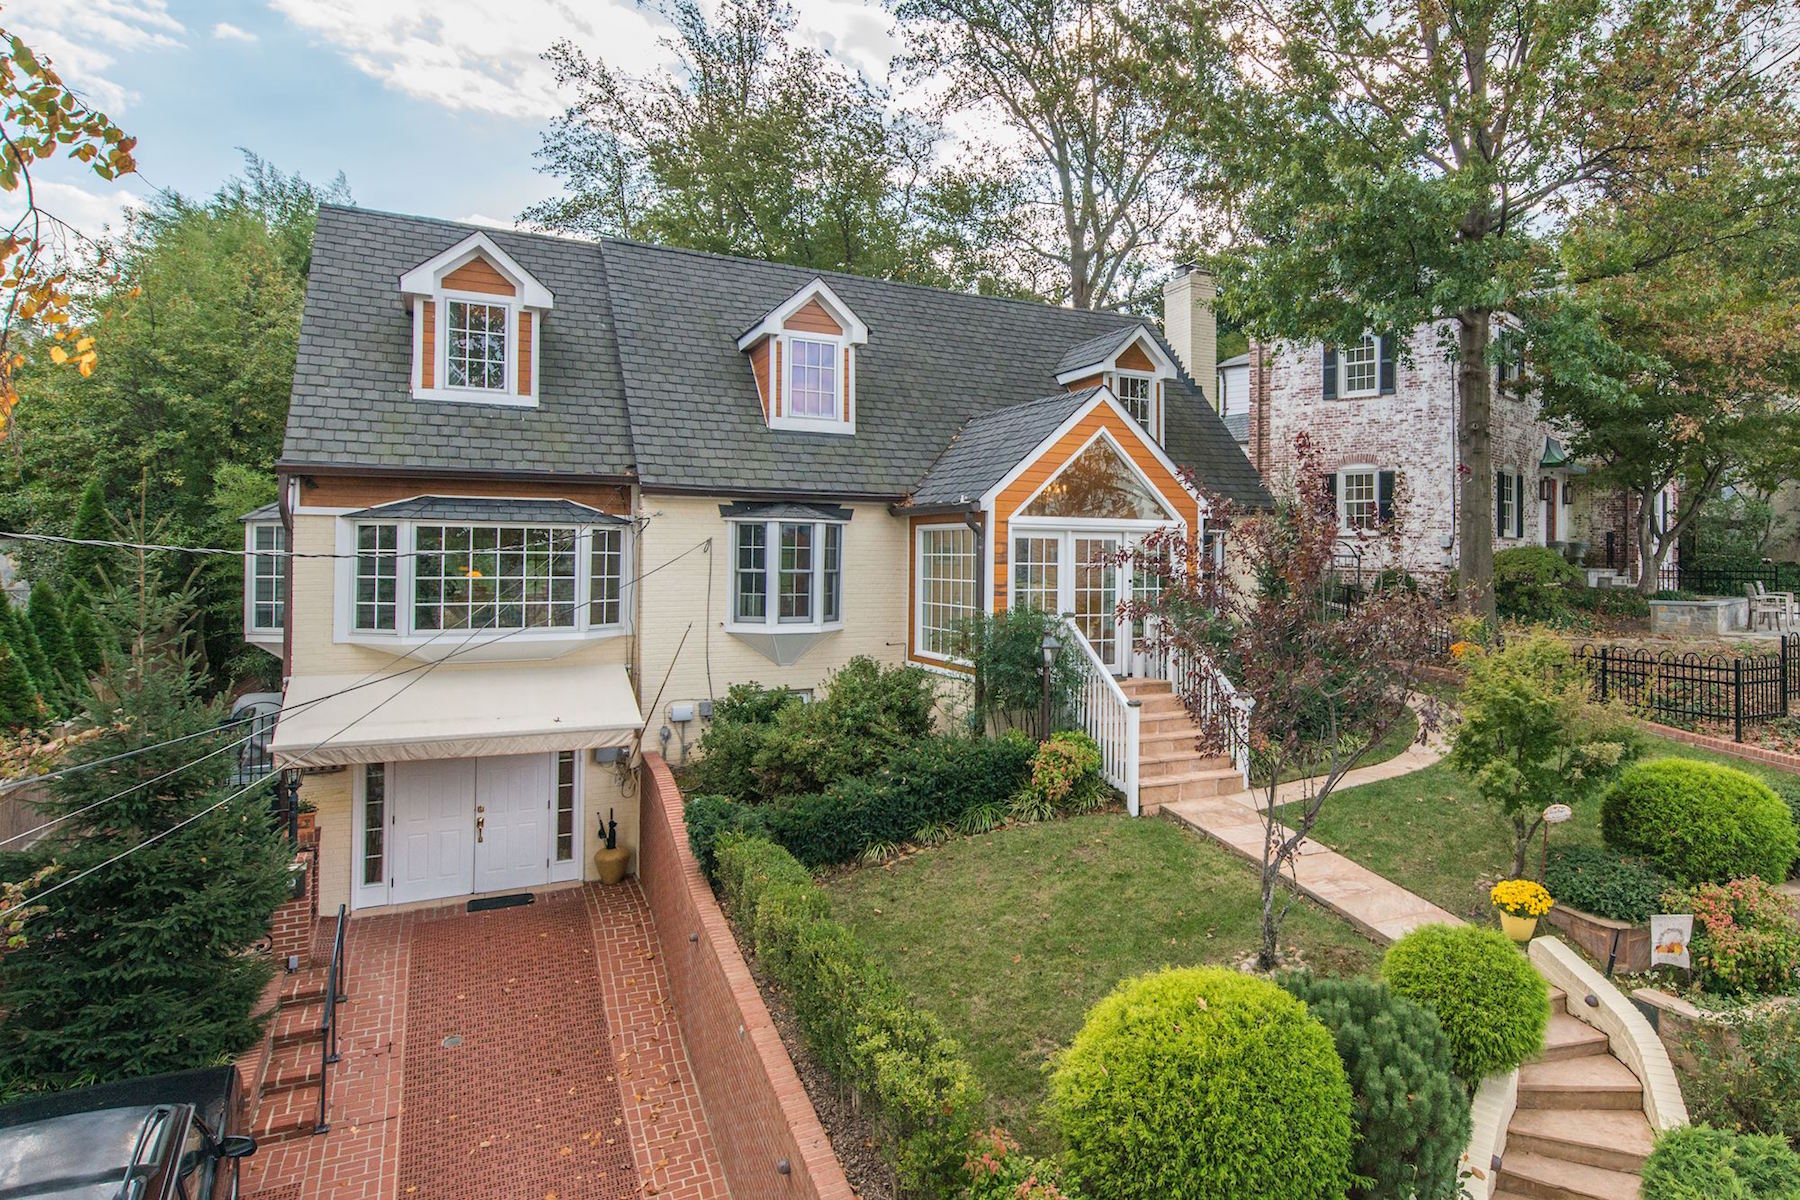 Single Family Home for Rent at Belle Haven 6005 Grove Dr Alexandria, Virginia 22307 United States